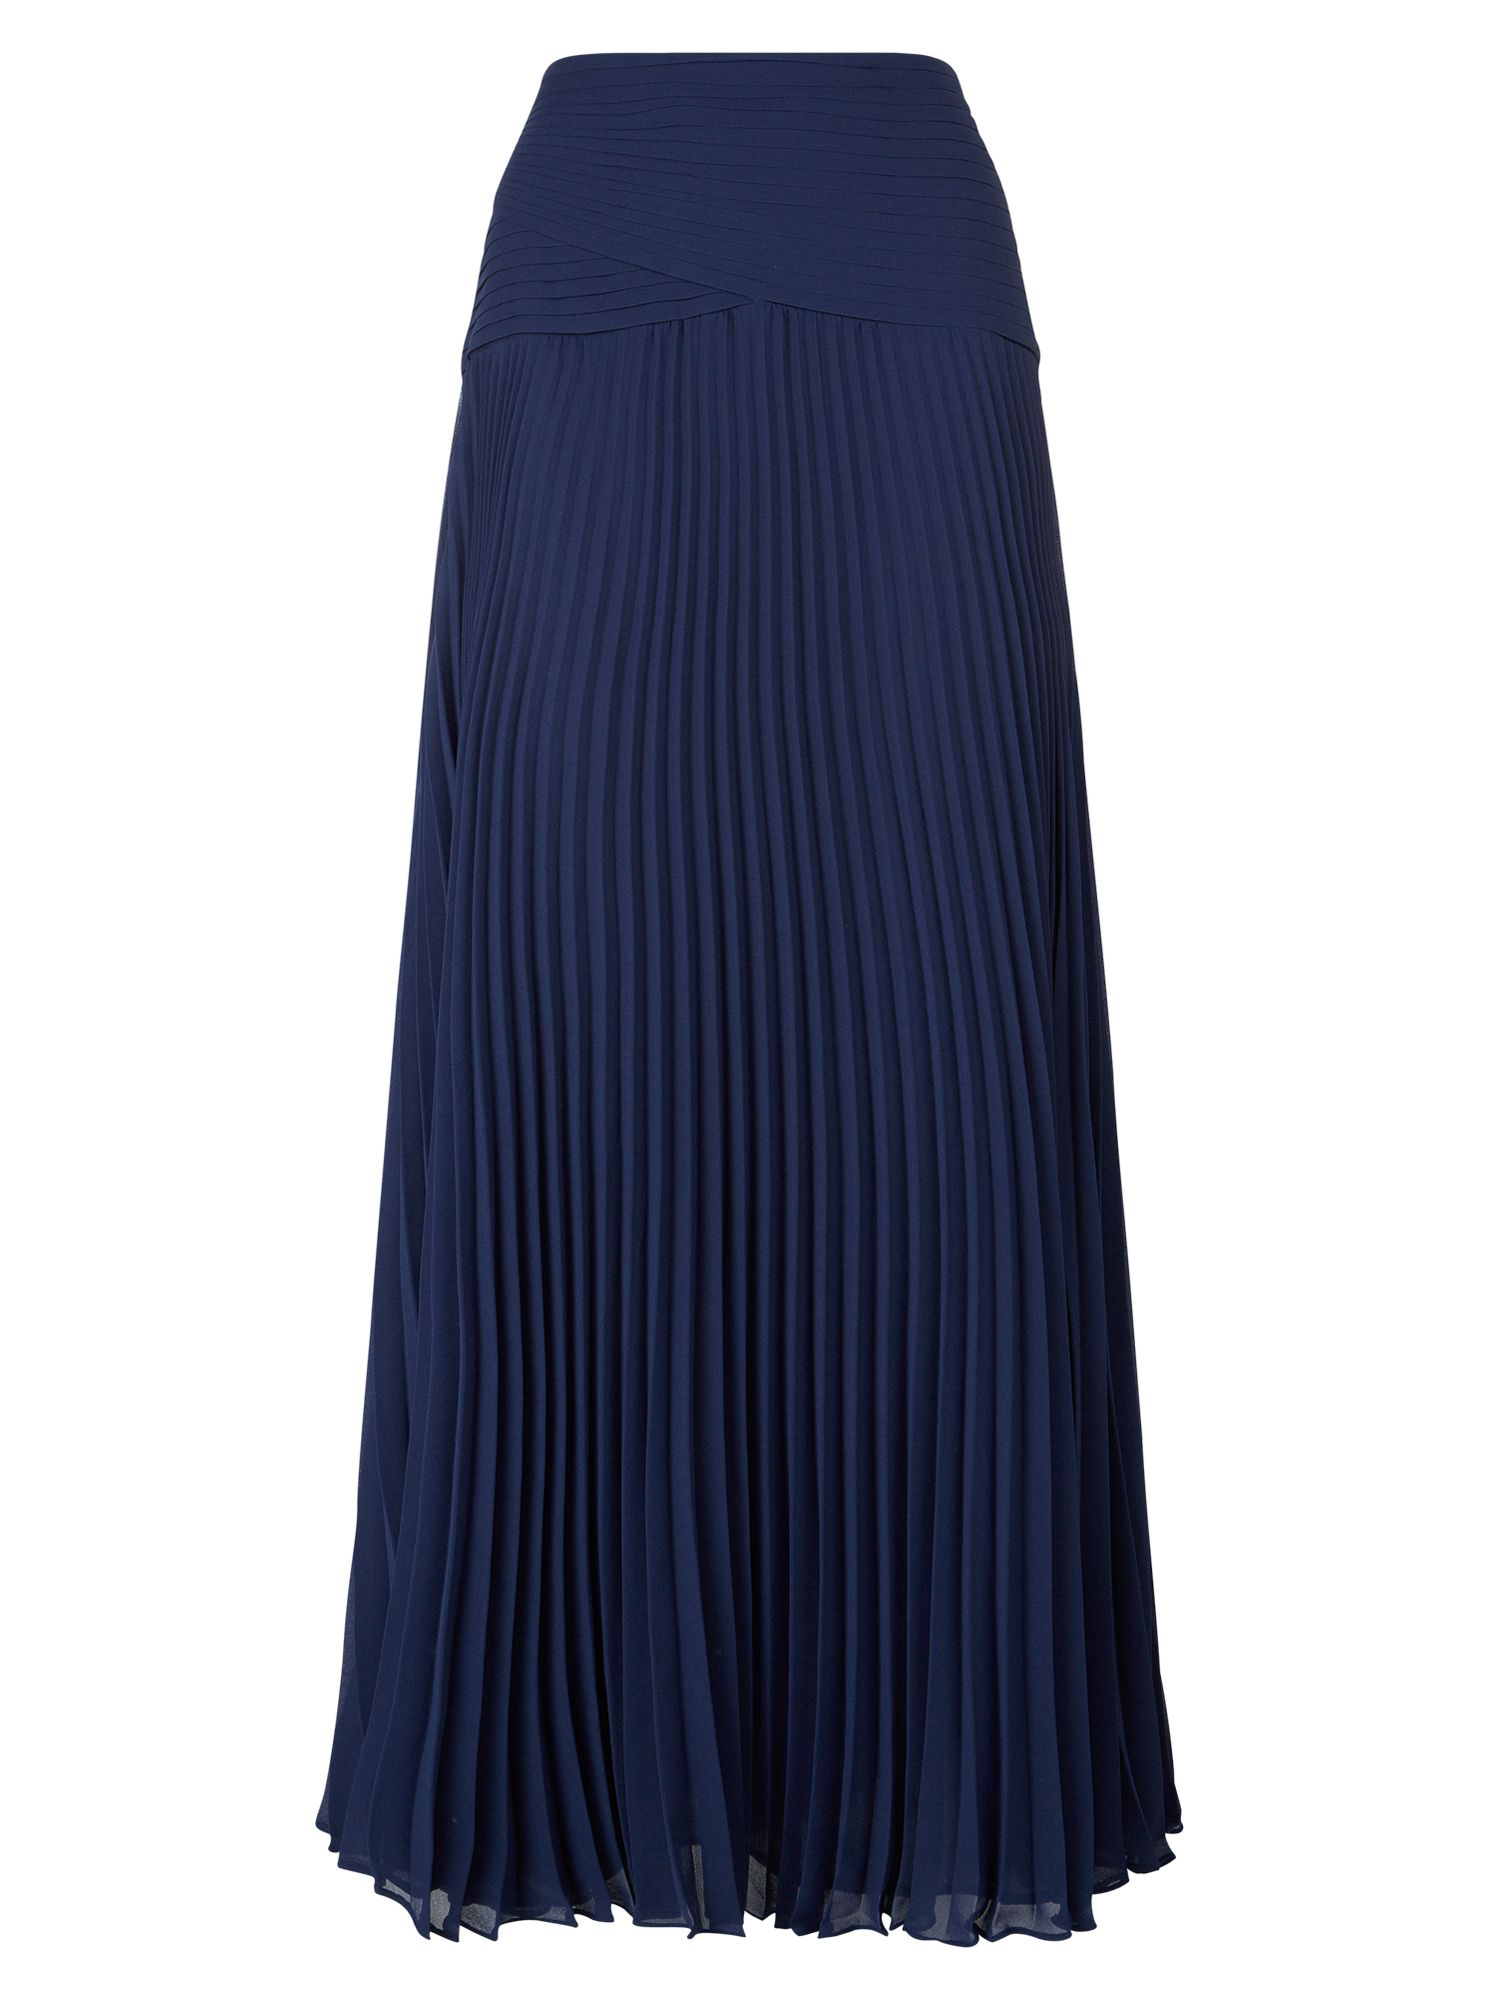 jacques vert navy pleated maxi skirt in blue midnight